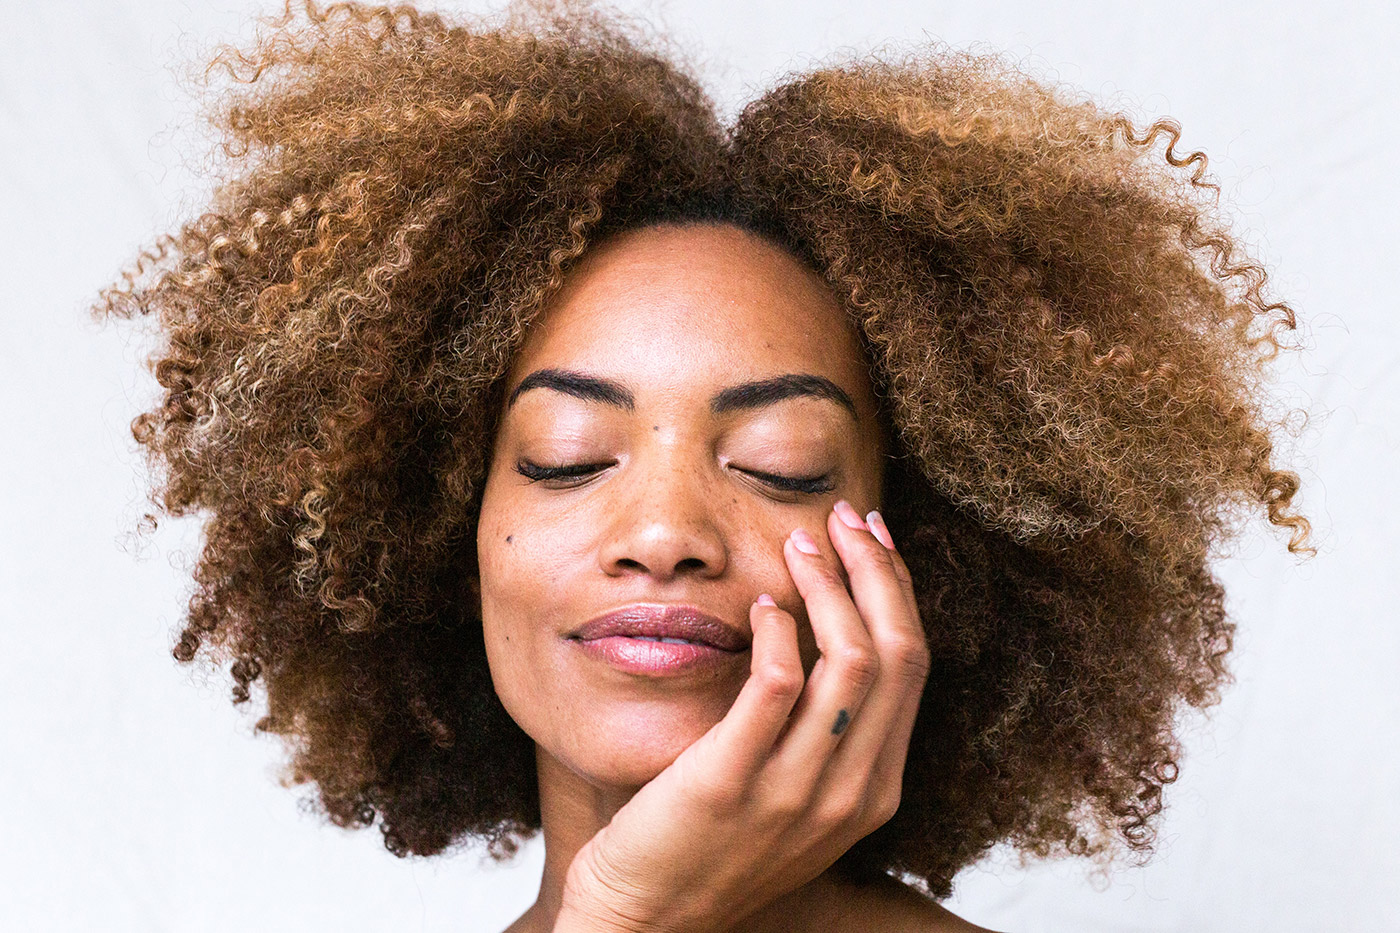 How To Fix Dry Skin Around The Eyes